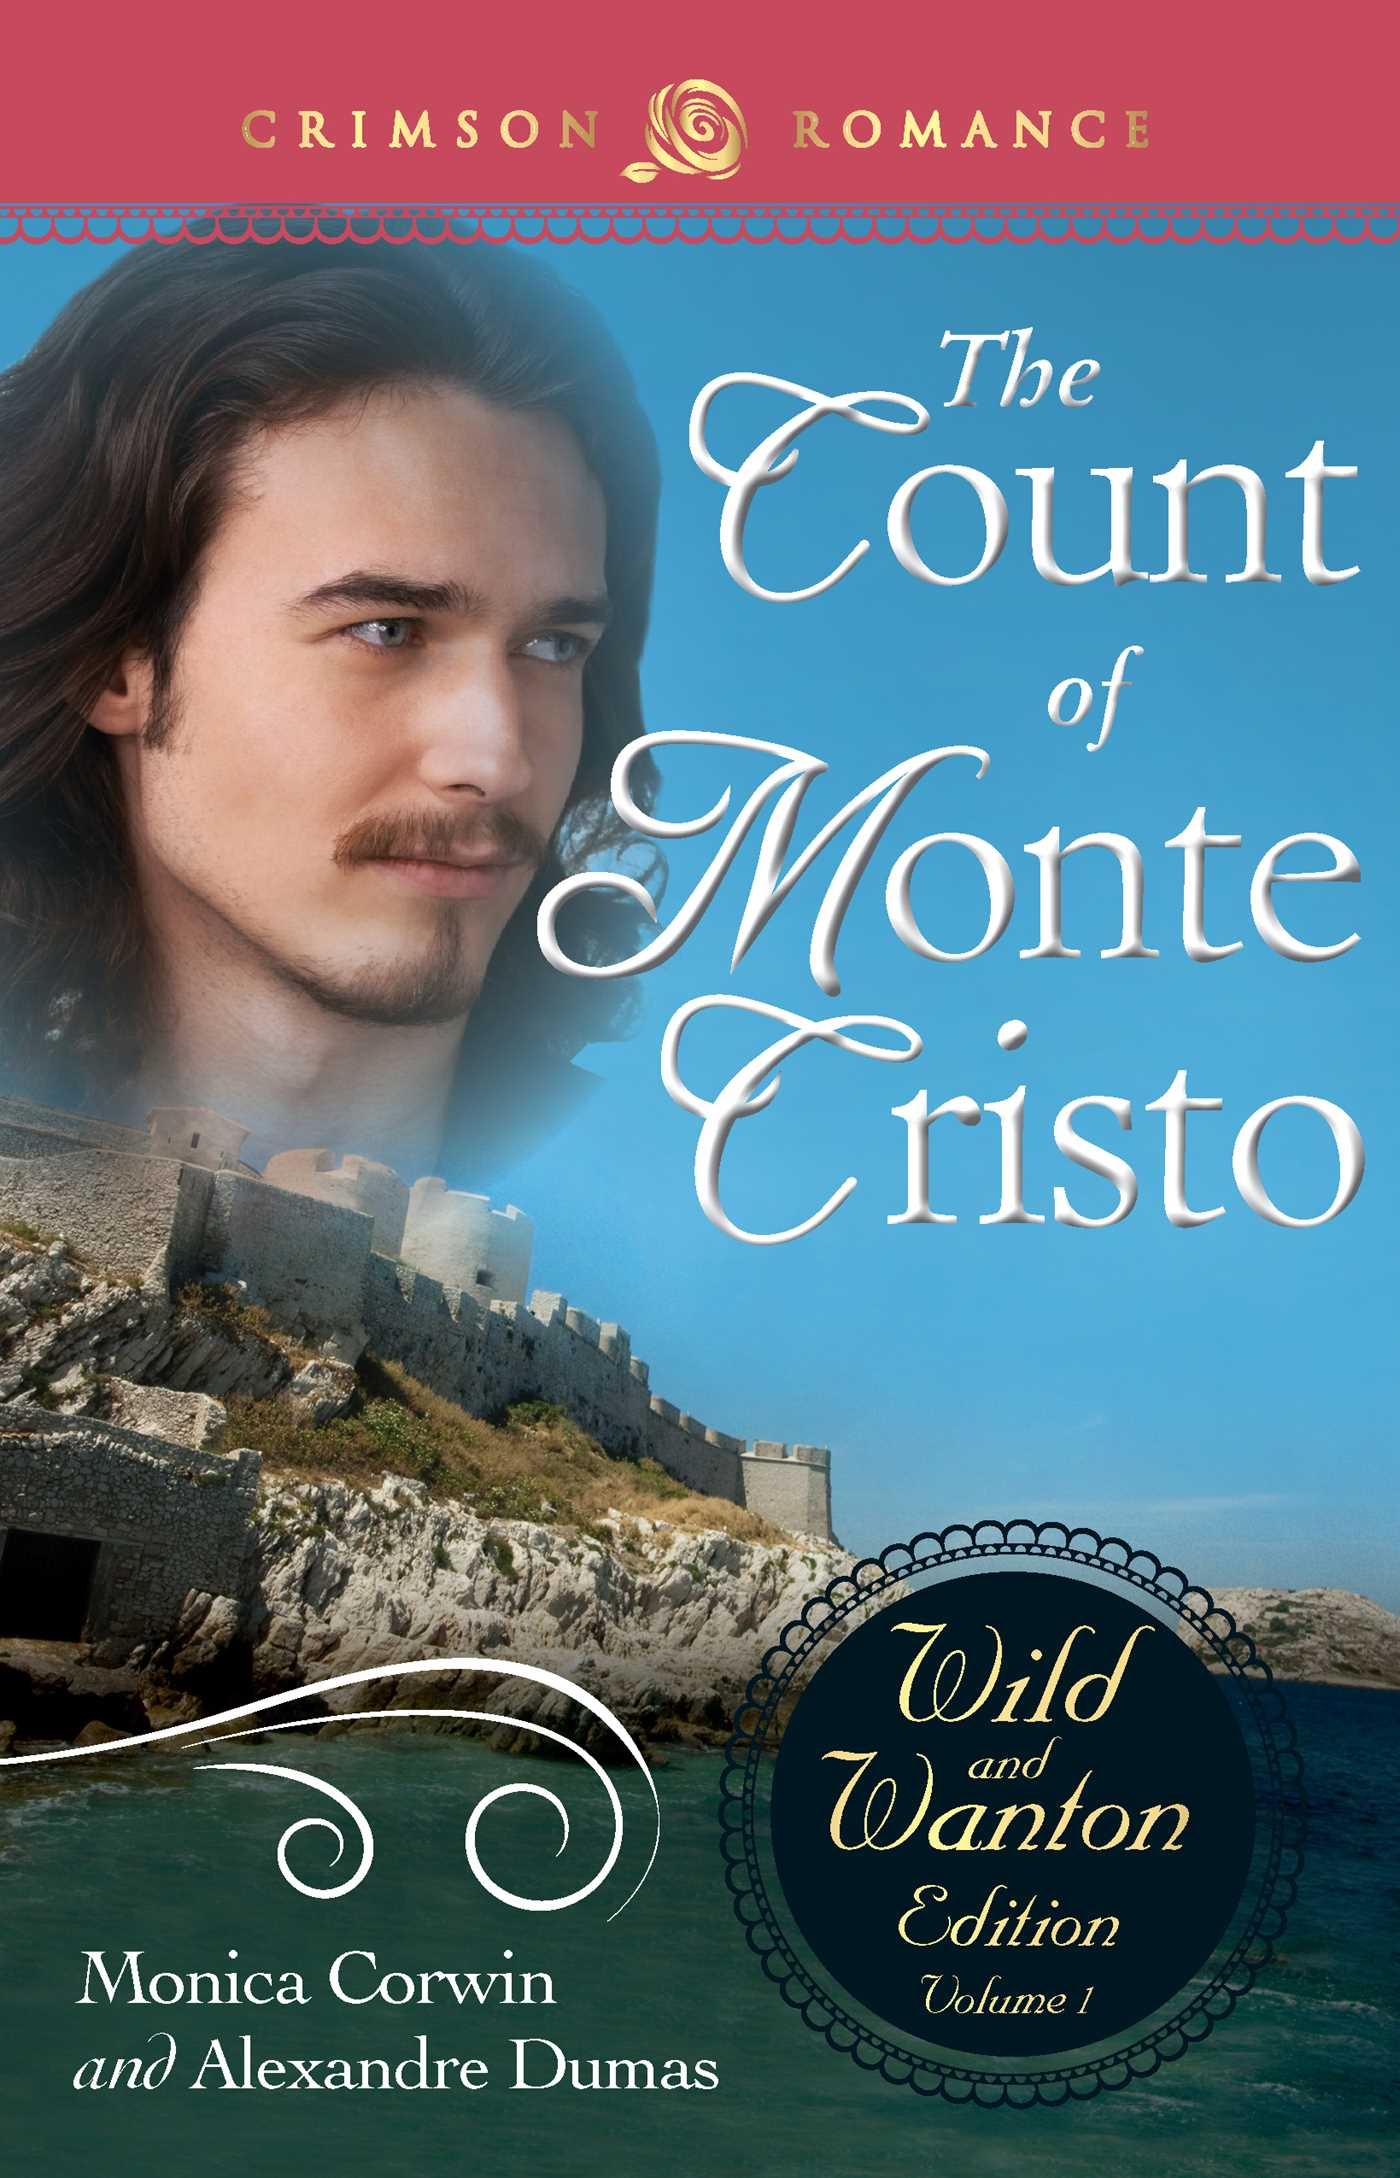 an analysis of how edmond dantes punishes his enemies in the count of monte cristo by alexandre duma The count of monte cristo character analysis in the the count of monte cristo, by alexandre show how edmond dantes punishes his four enemies with.